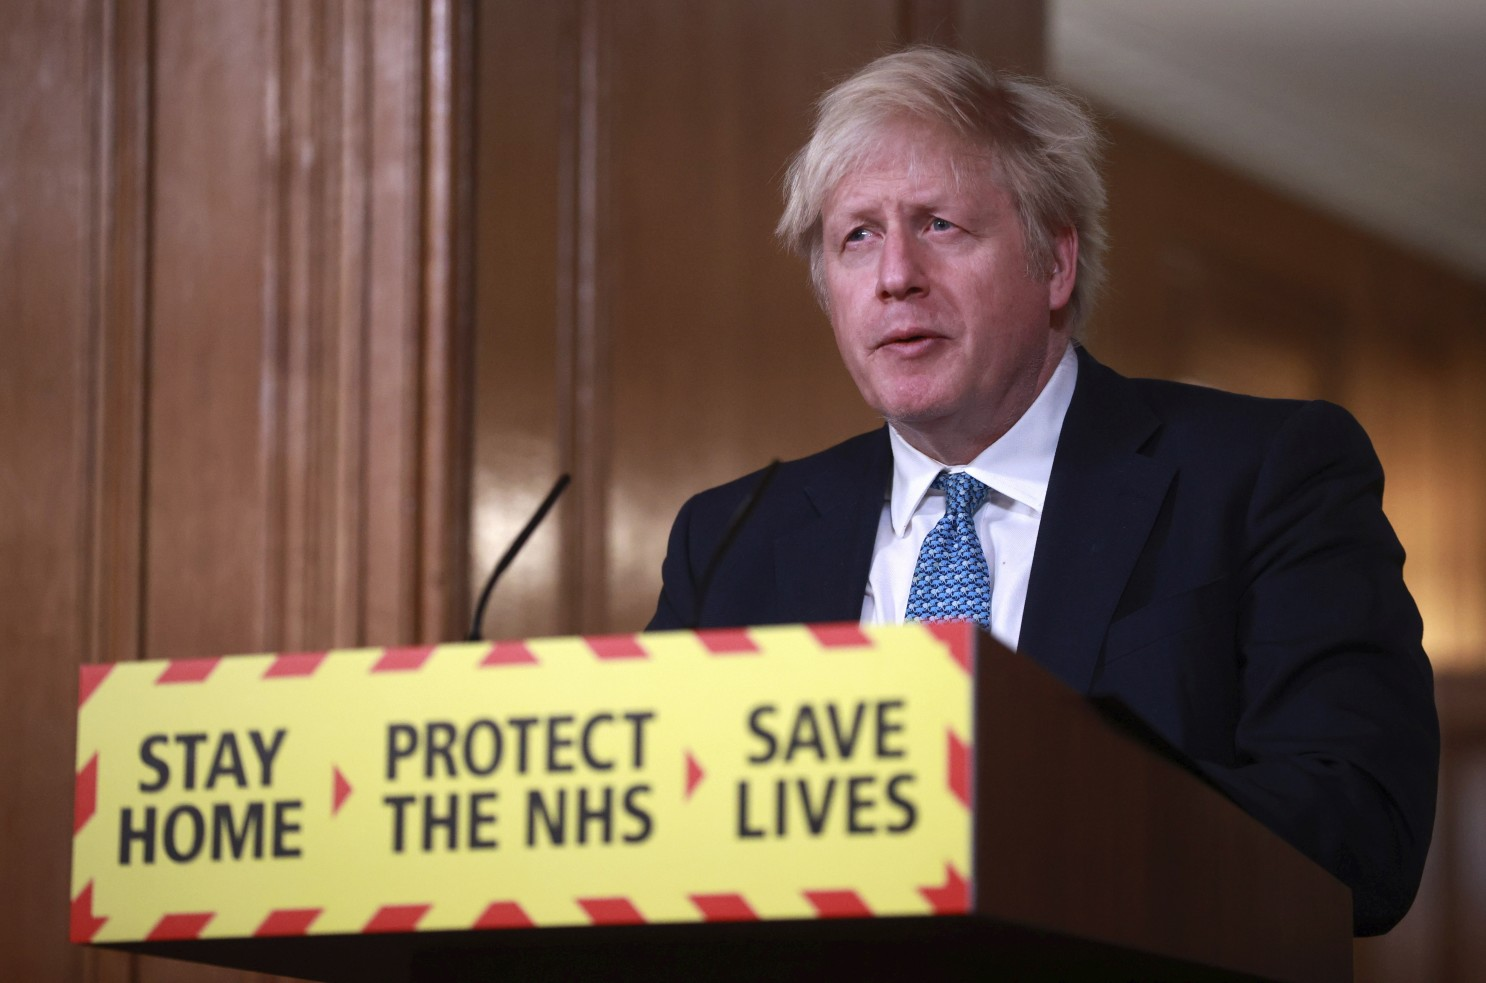 UK leader to use 'every second' to vaccinate the vulnerable